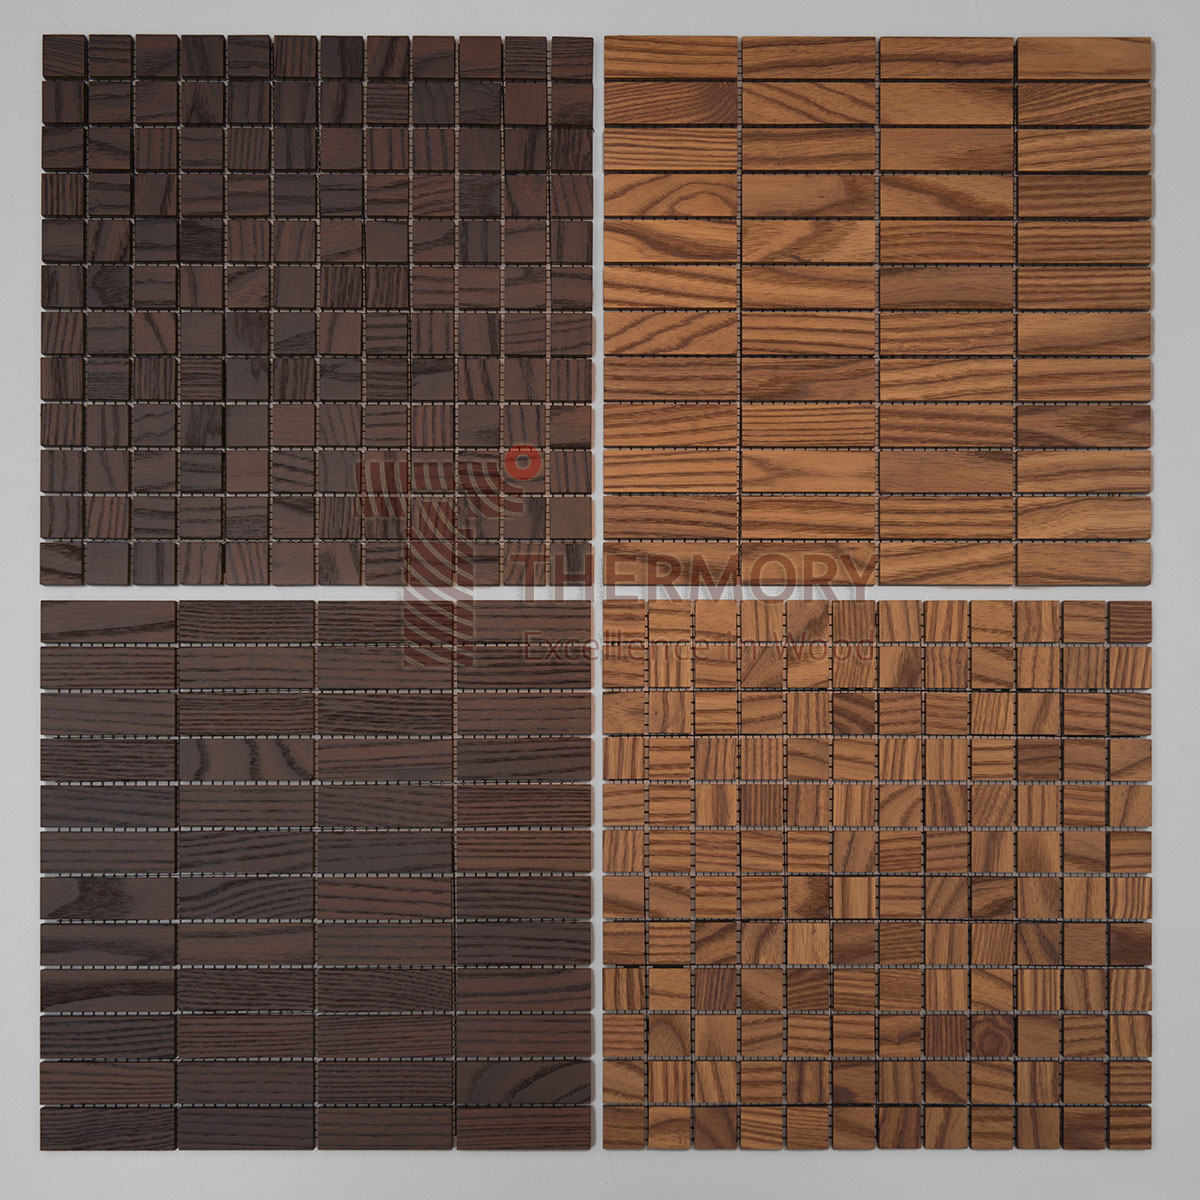 Decor tiles  9 x 298 x 298mm Medium/Intense -  Thermory® Decor mosaic tiles are a stylish alternative to ceramic tiles. They are made of medium-modified or intense-modified thermo-ash and finished with an extremely hard lacquer. Decor tiles can be used on walls and floors, including wet roomsInstallation of the Decor tiles is similar to ceramic mosaic tiles.